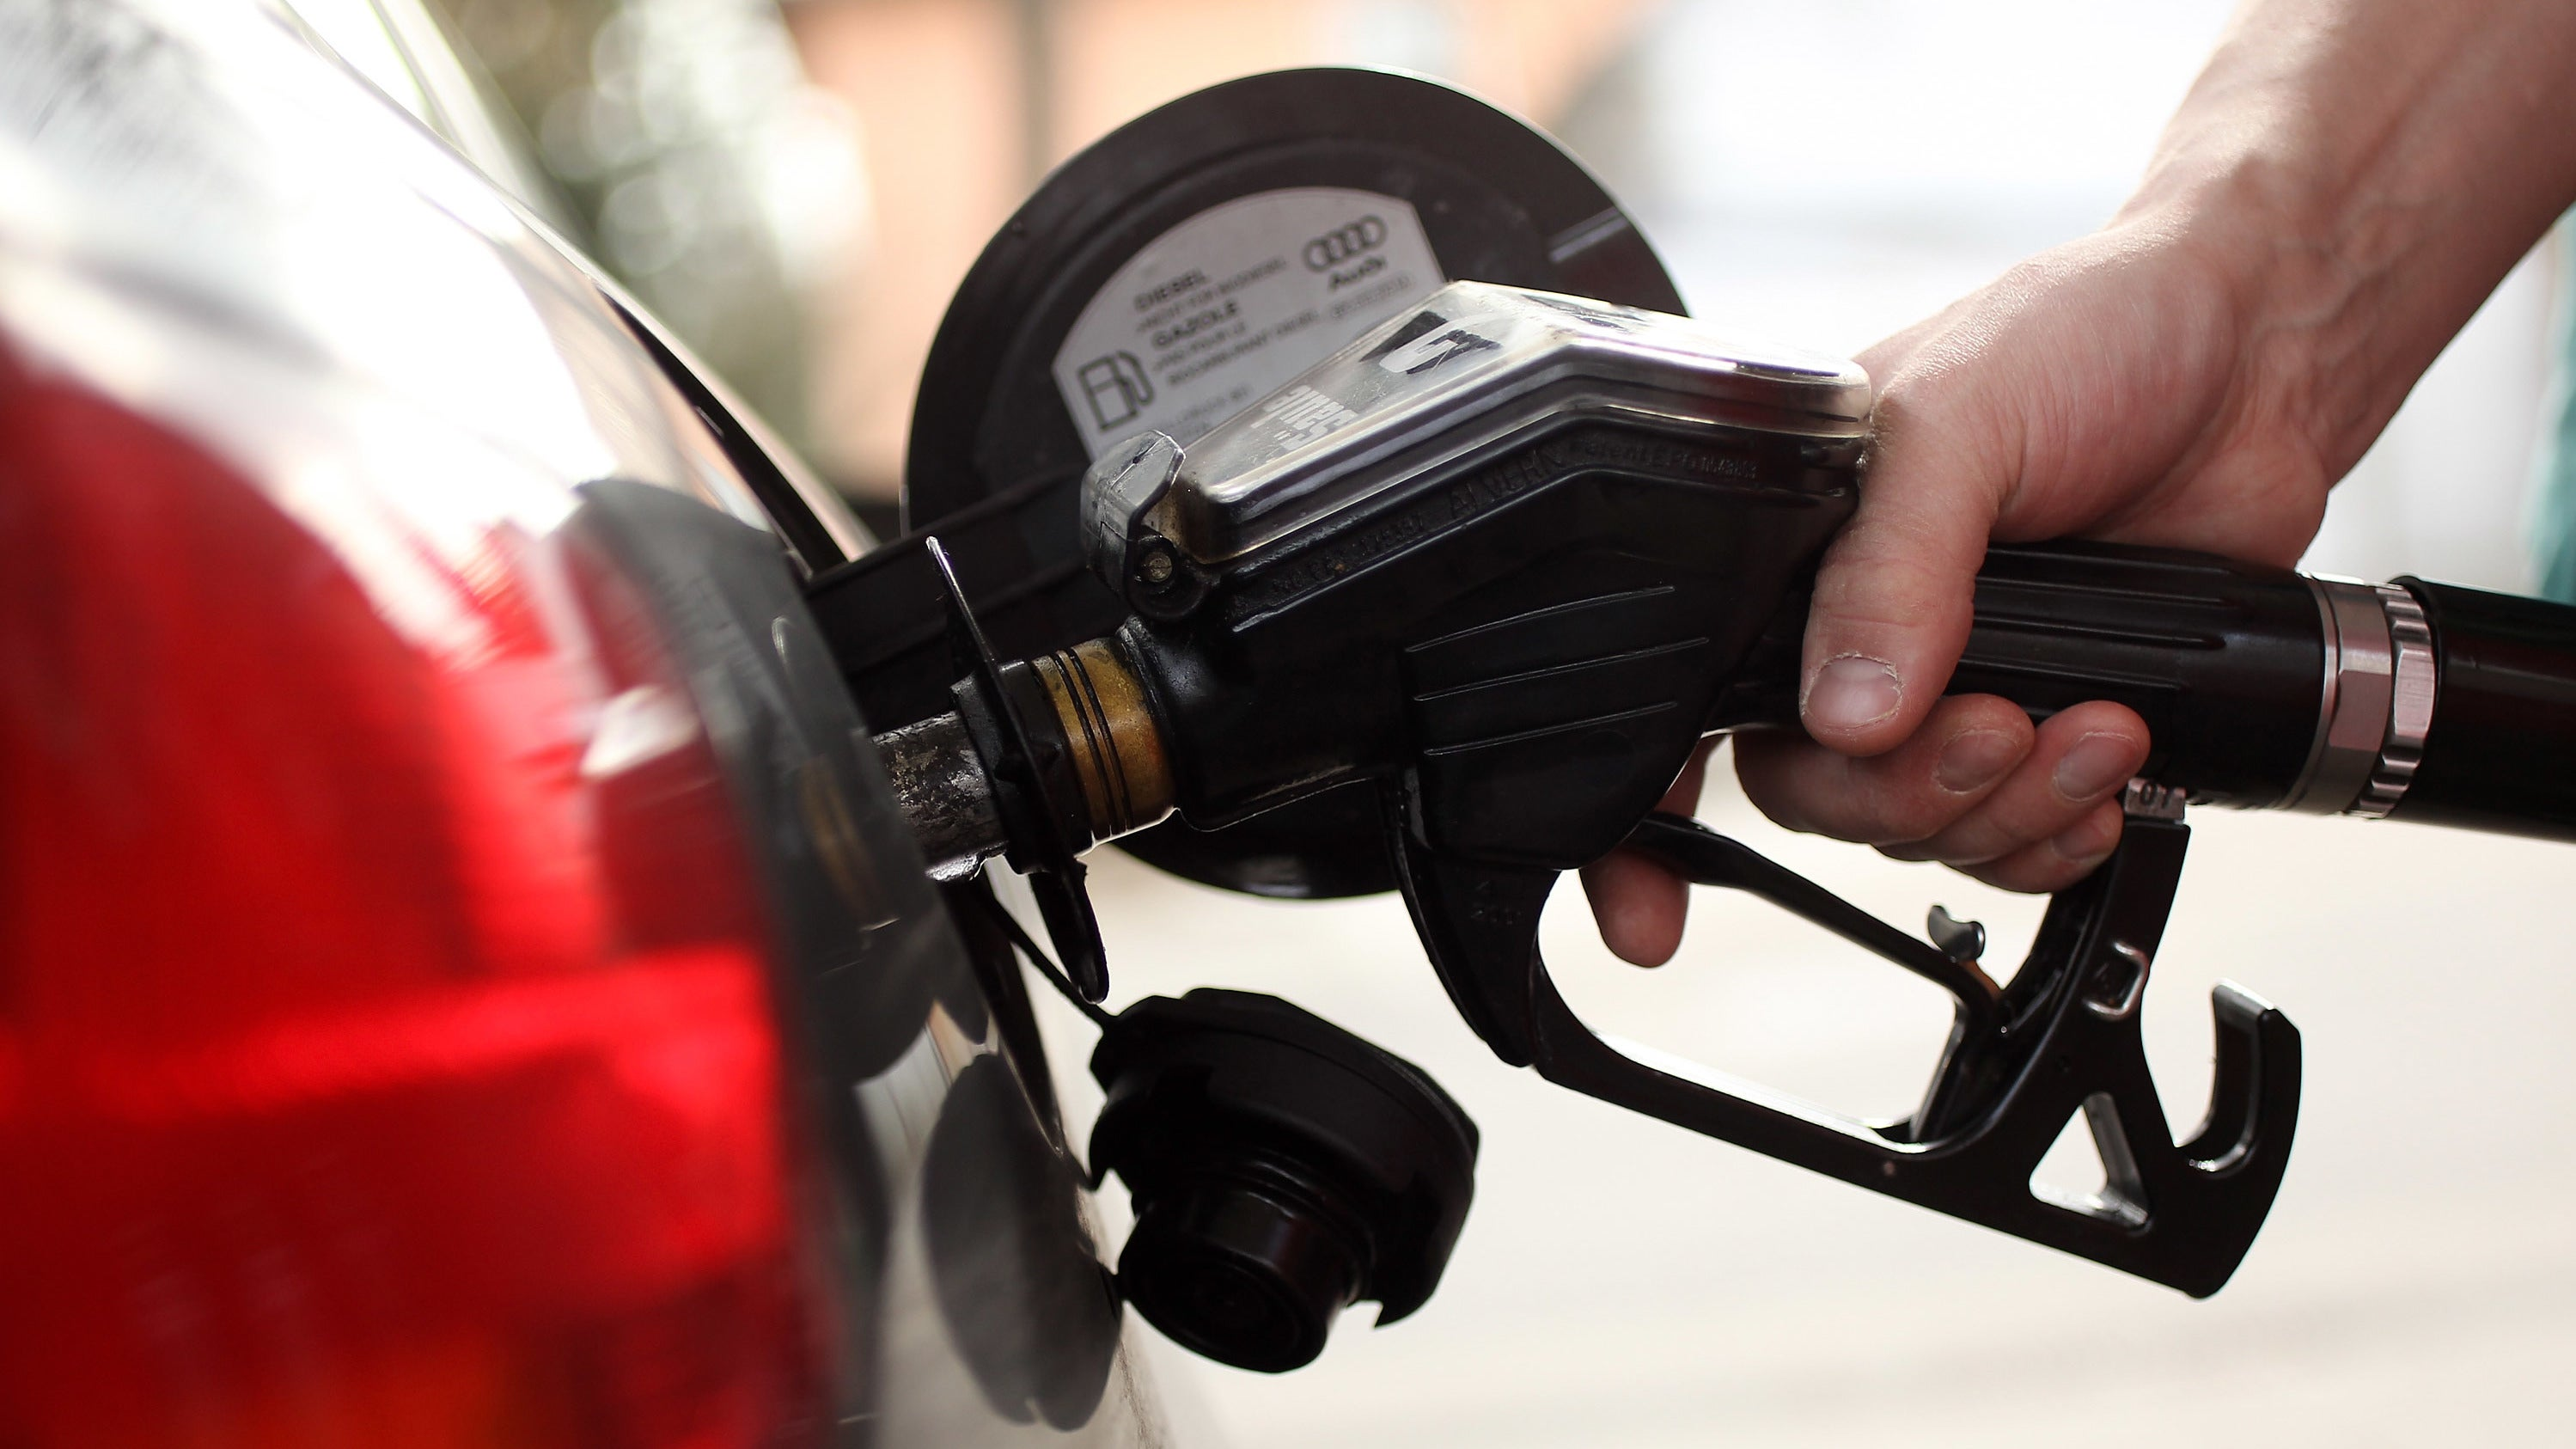 Hackers Reportedly Stole Over 2000 Litres Of Petrol From A Petrol Station